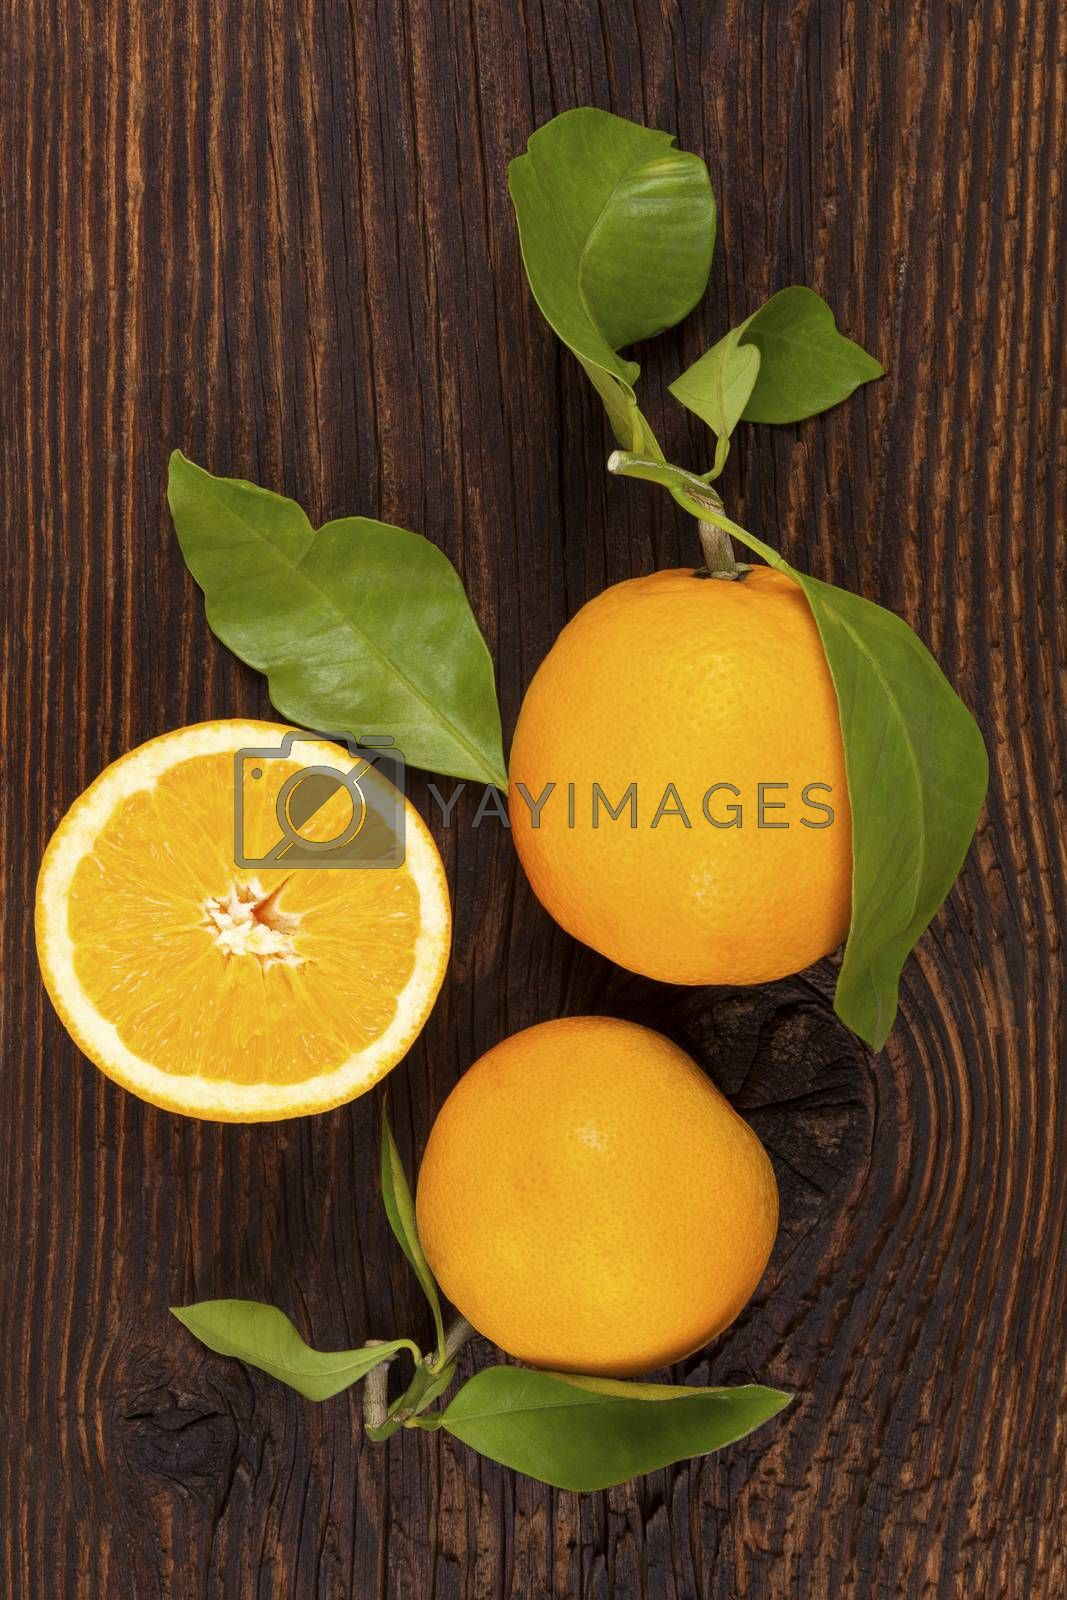 Fresh ripe oranges with green leaves in wooden crate. Organic fresh oranges, healthy fruit eating.